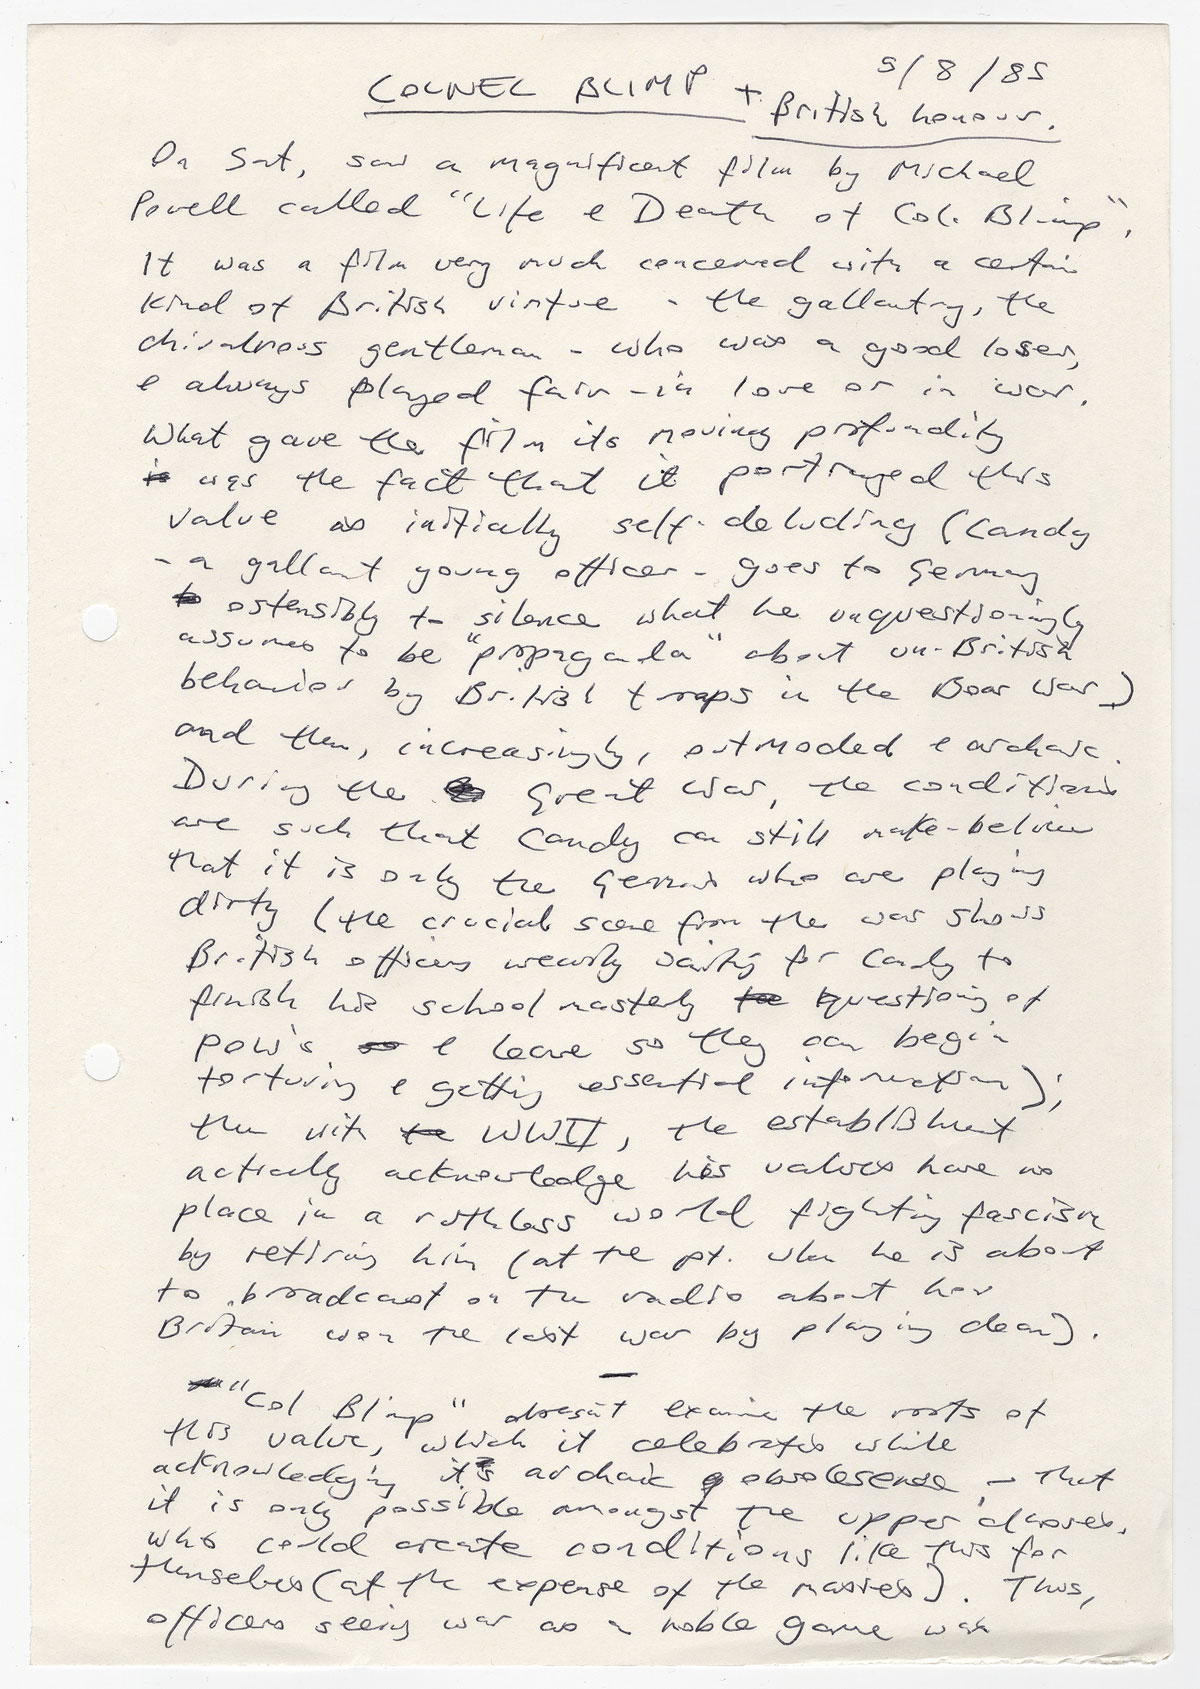 """Kazuo Ishiguro's notes on the film """"The Life and Death of Colonel Blimp"""" (1943), August 5, 1985."""